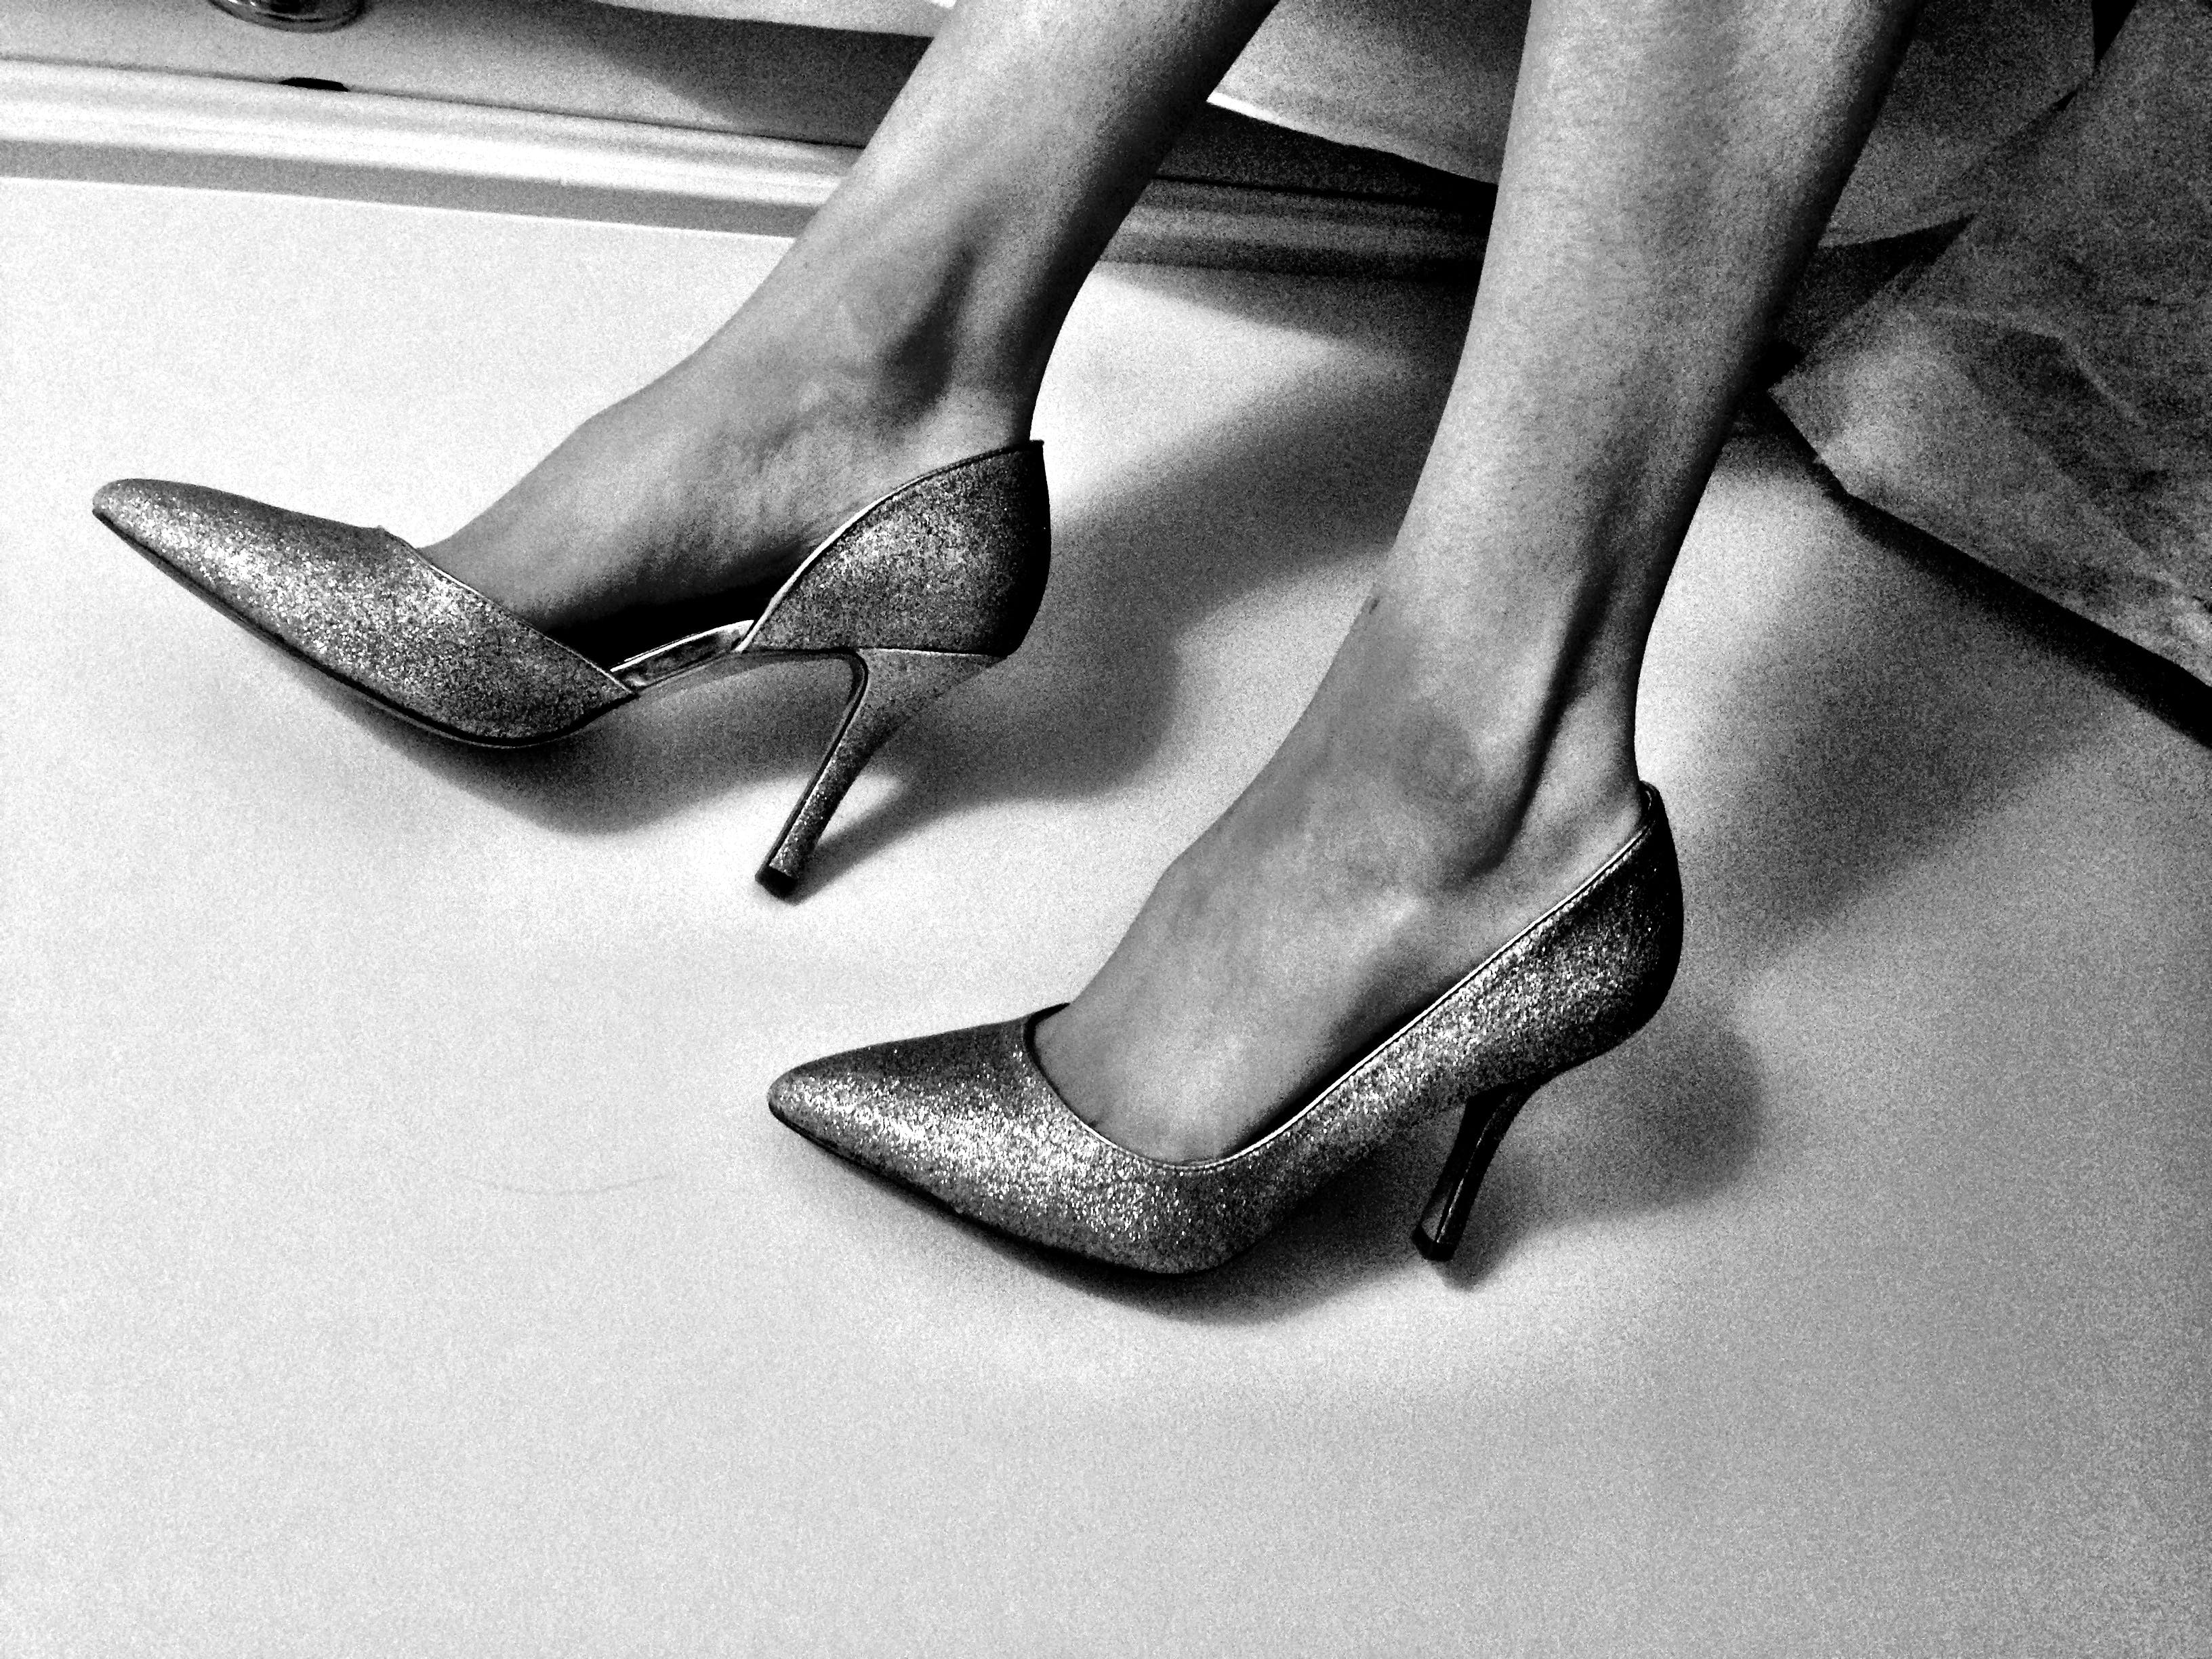 Grayscale Photography of Woman Wearing Heels